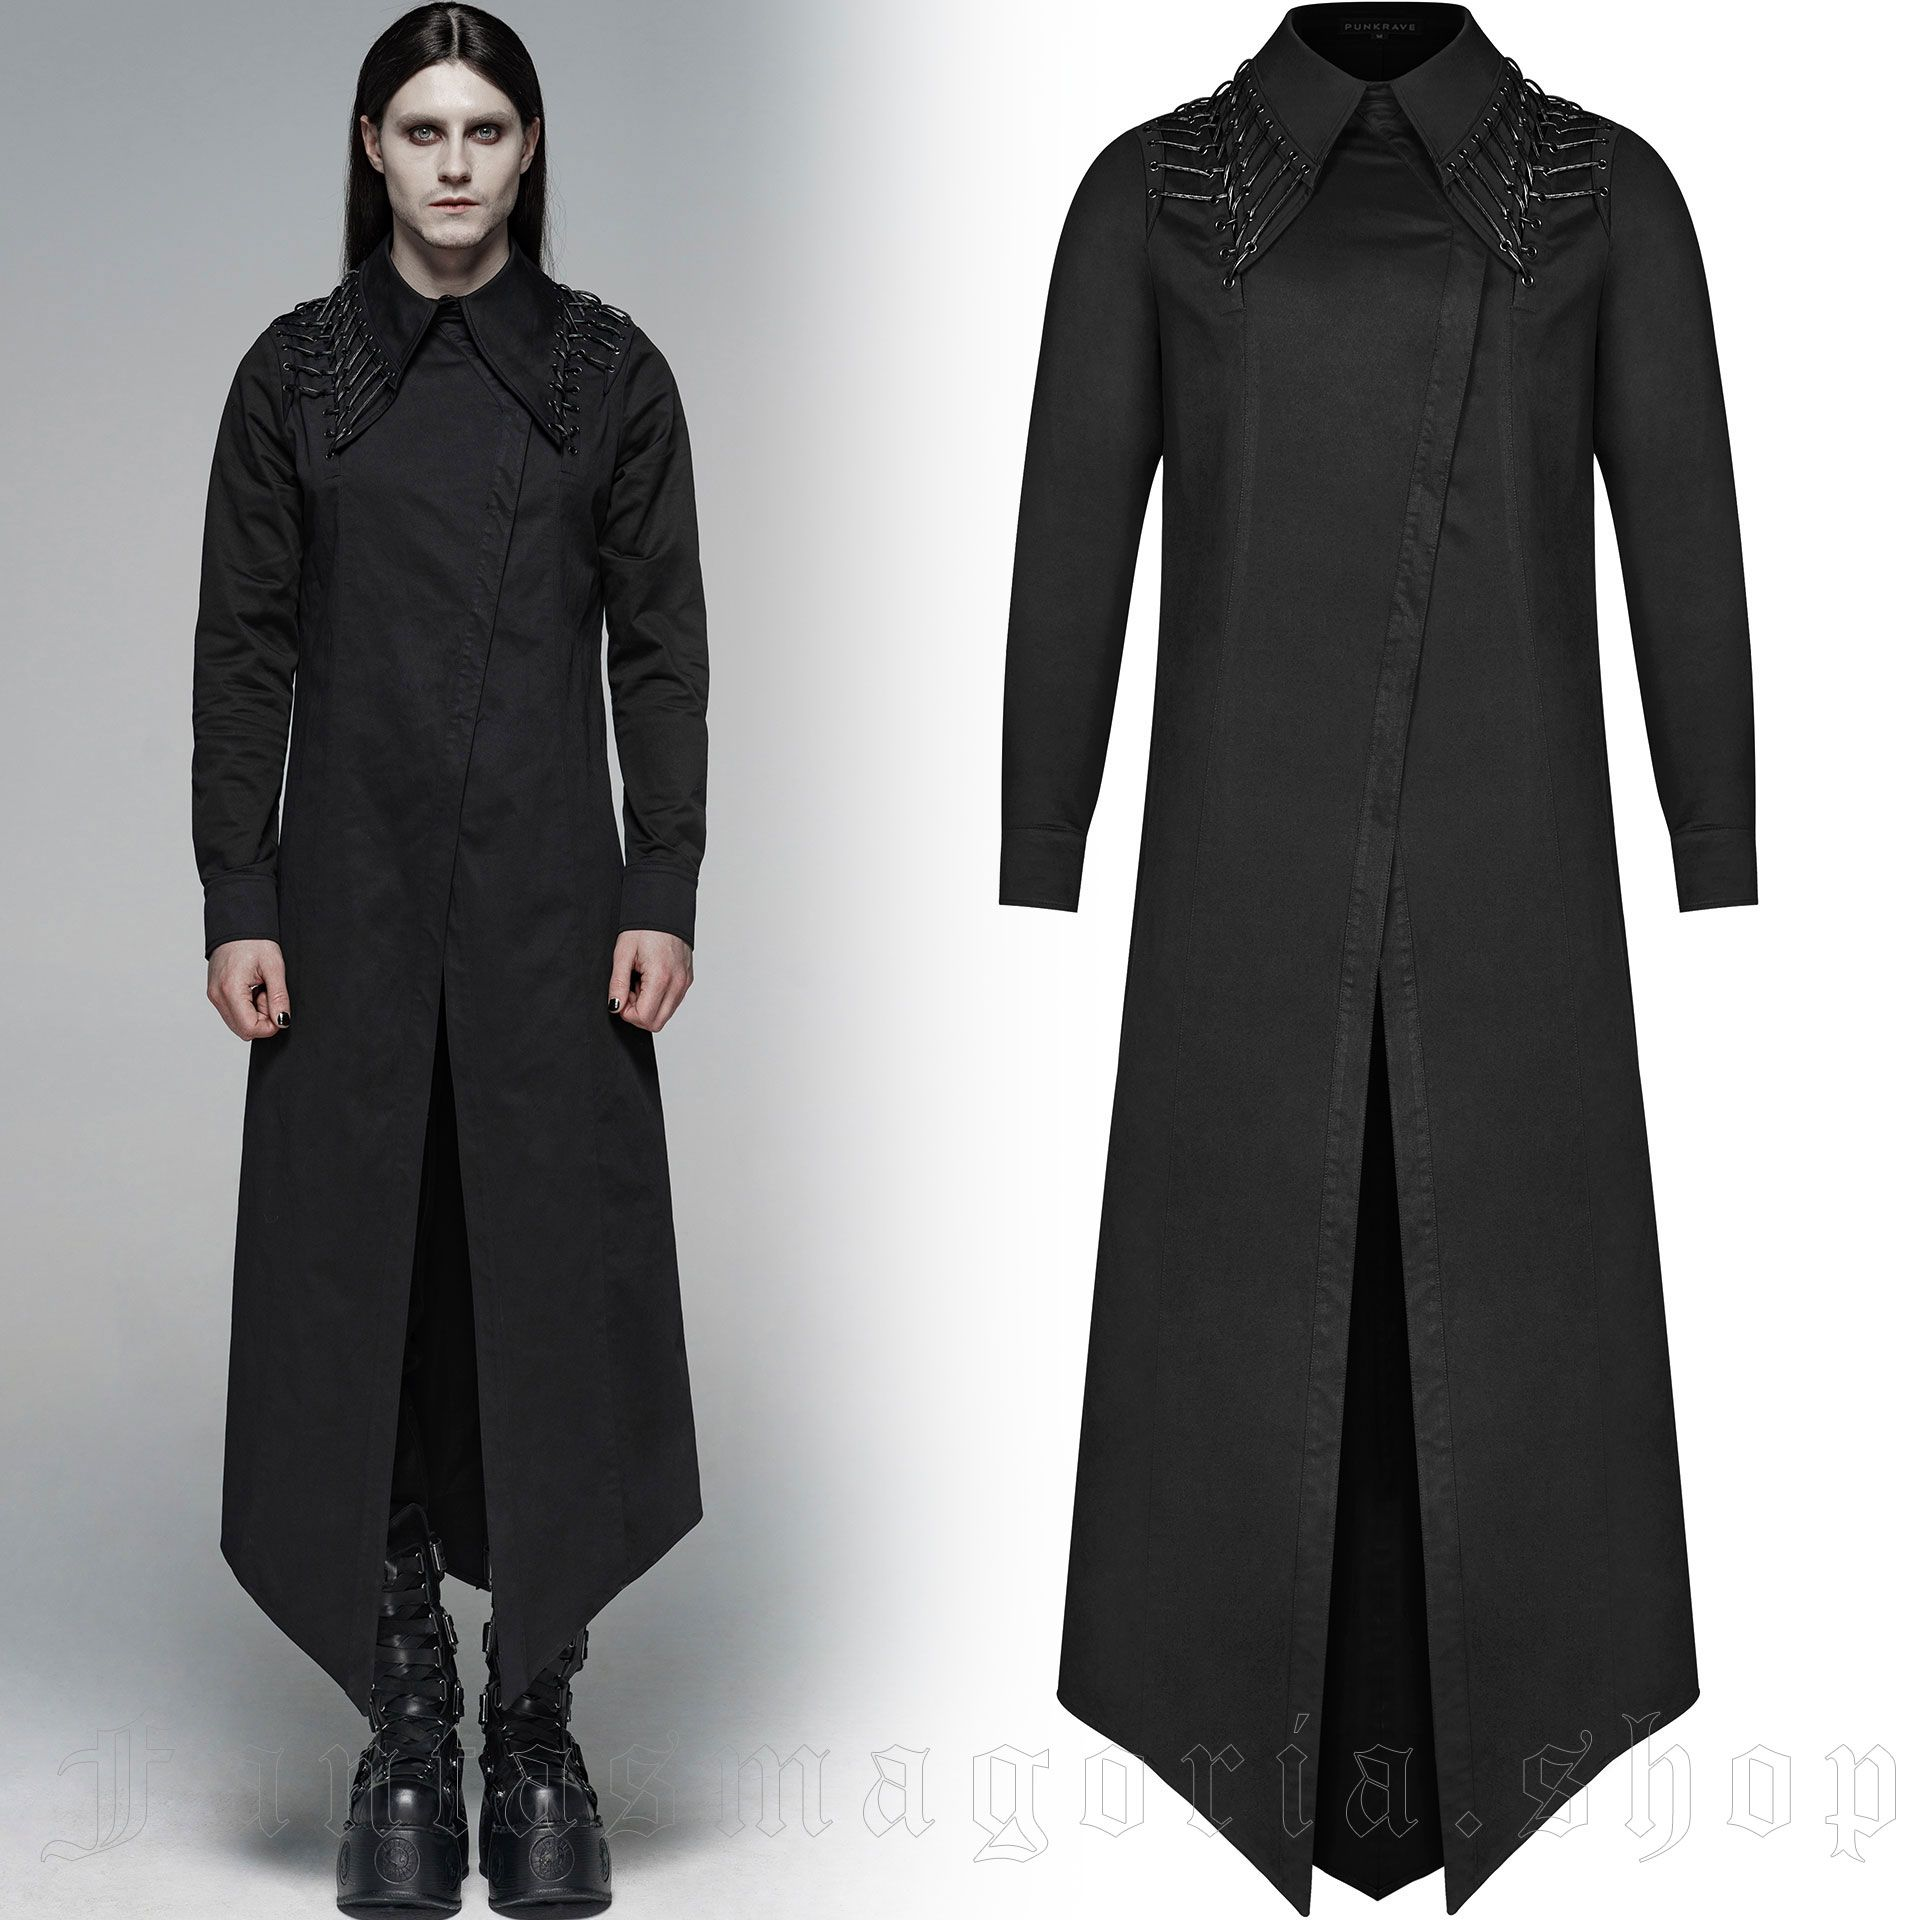 men's Malkavian Shirt-Robe by PUNK RAVE brand, code: WY-1104